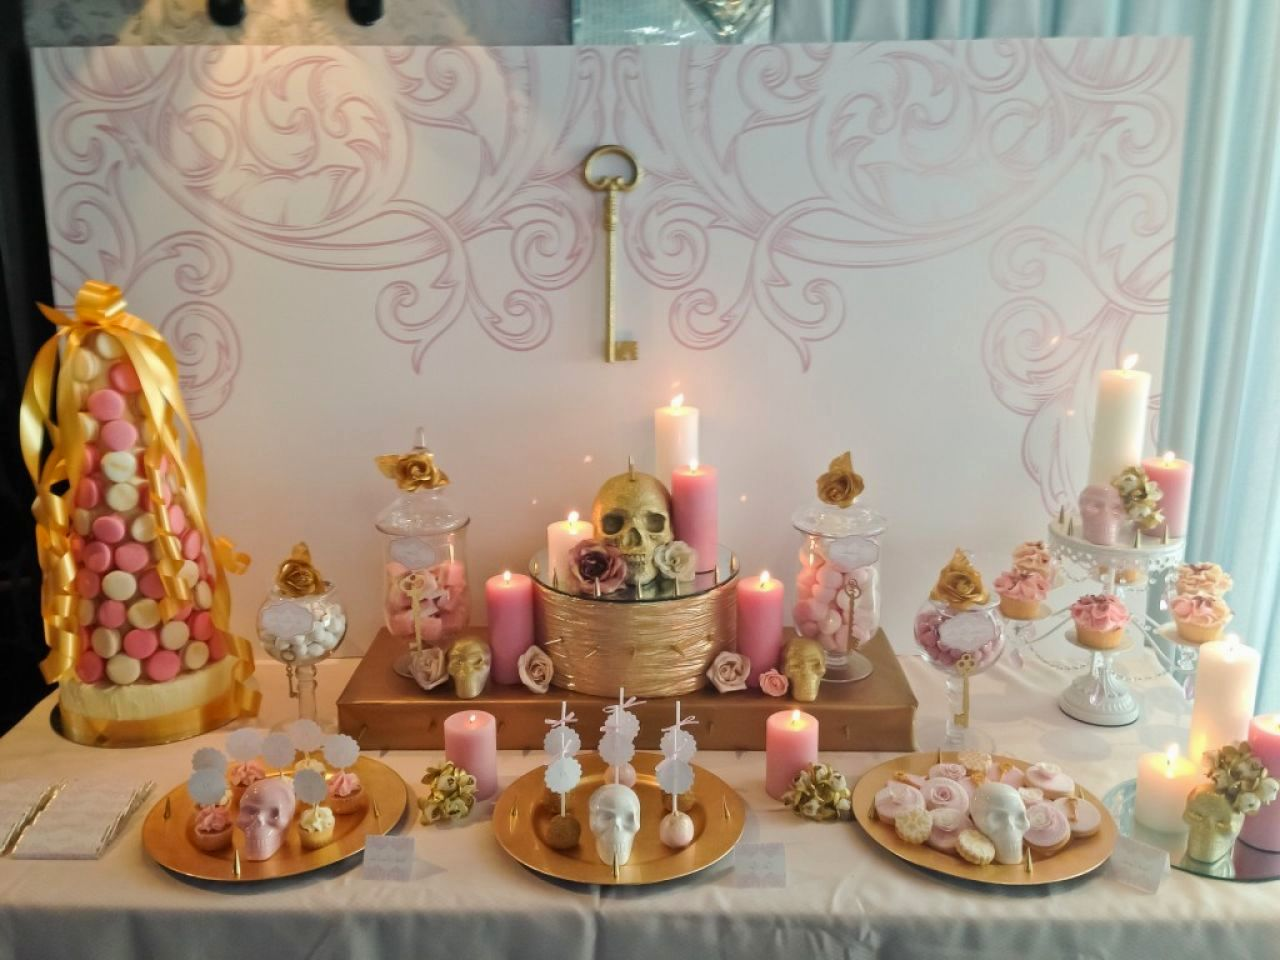 birthday theme ideas for her ; 21st-birthday-party-themes-for-her-21st-birthday-party-themes